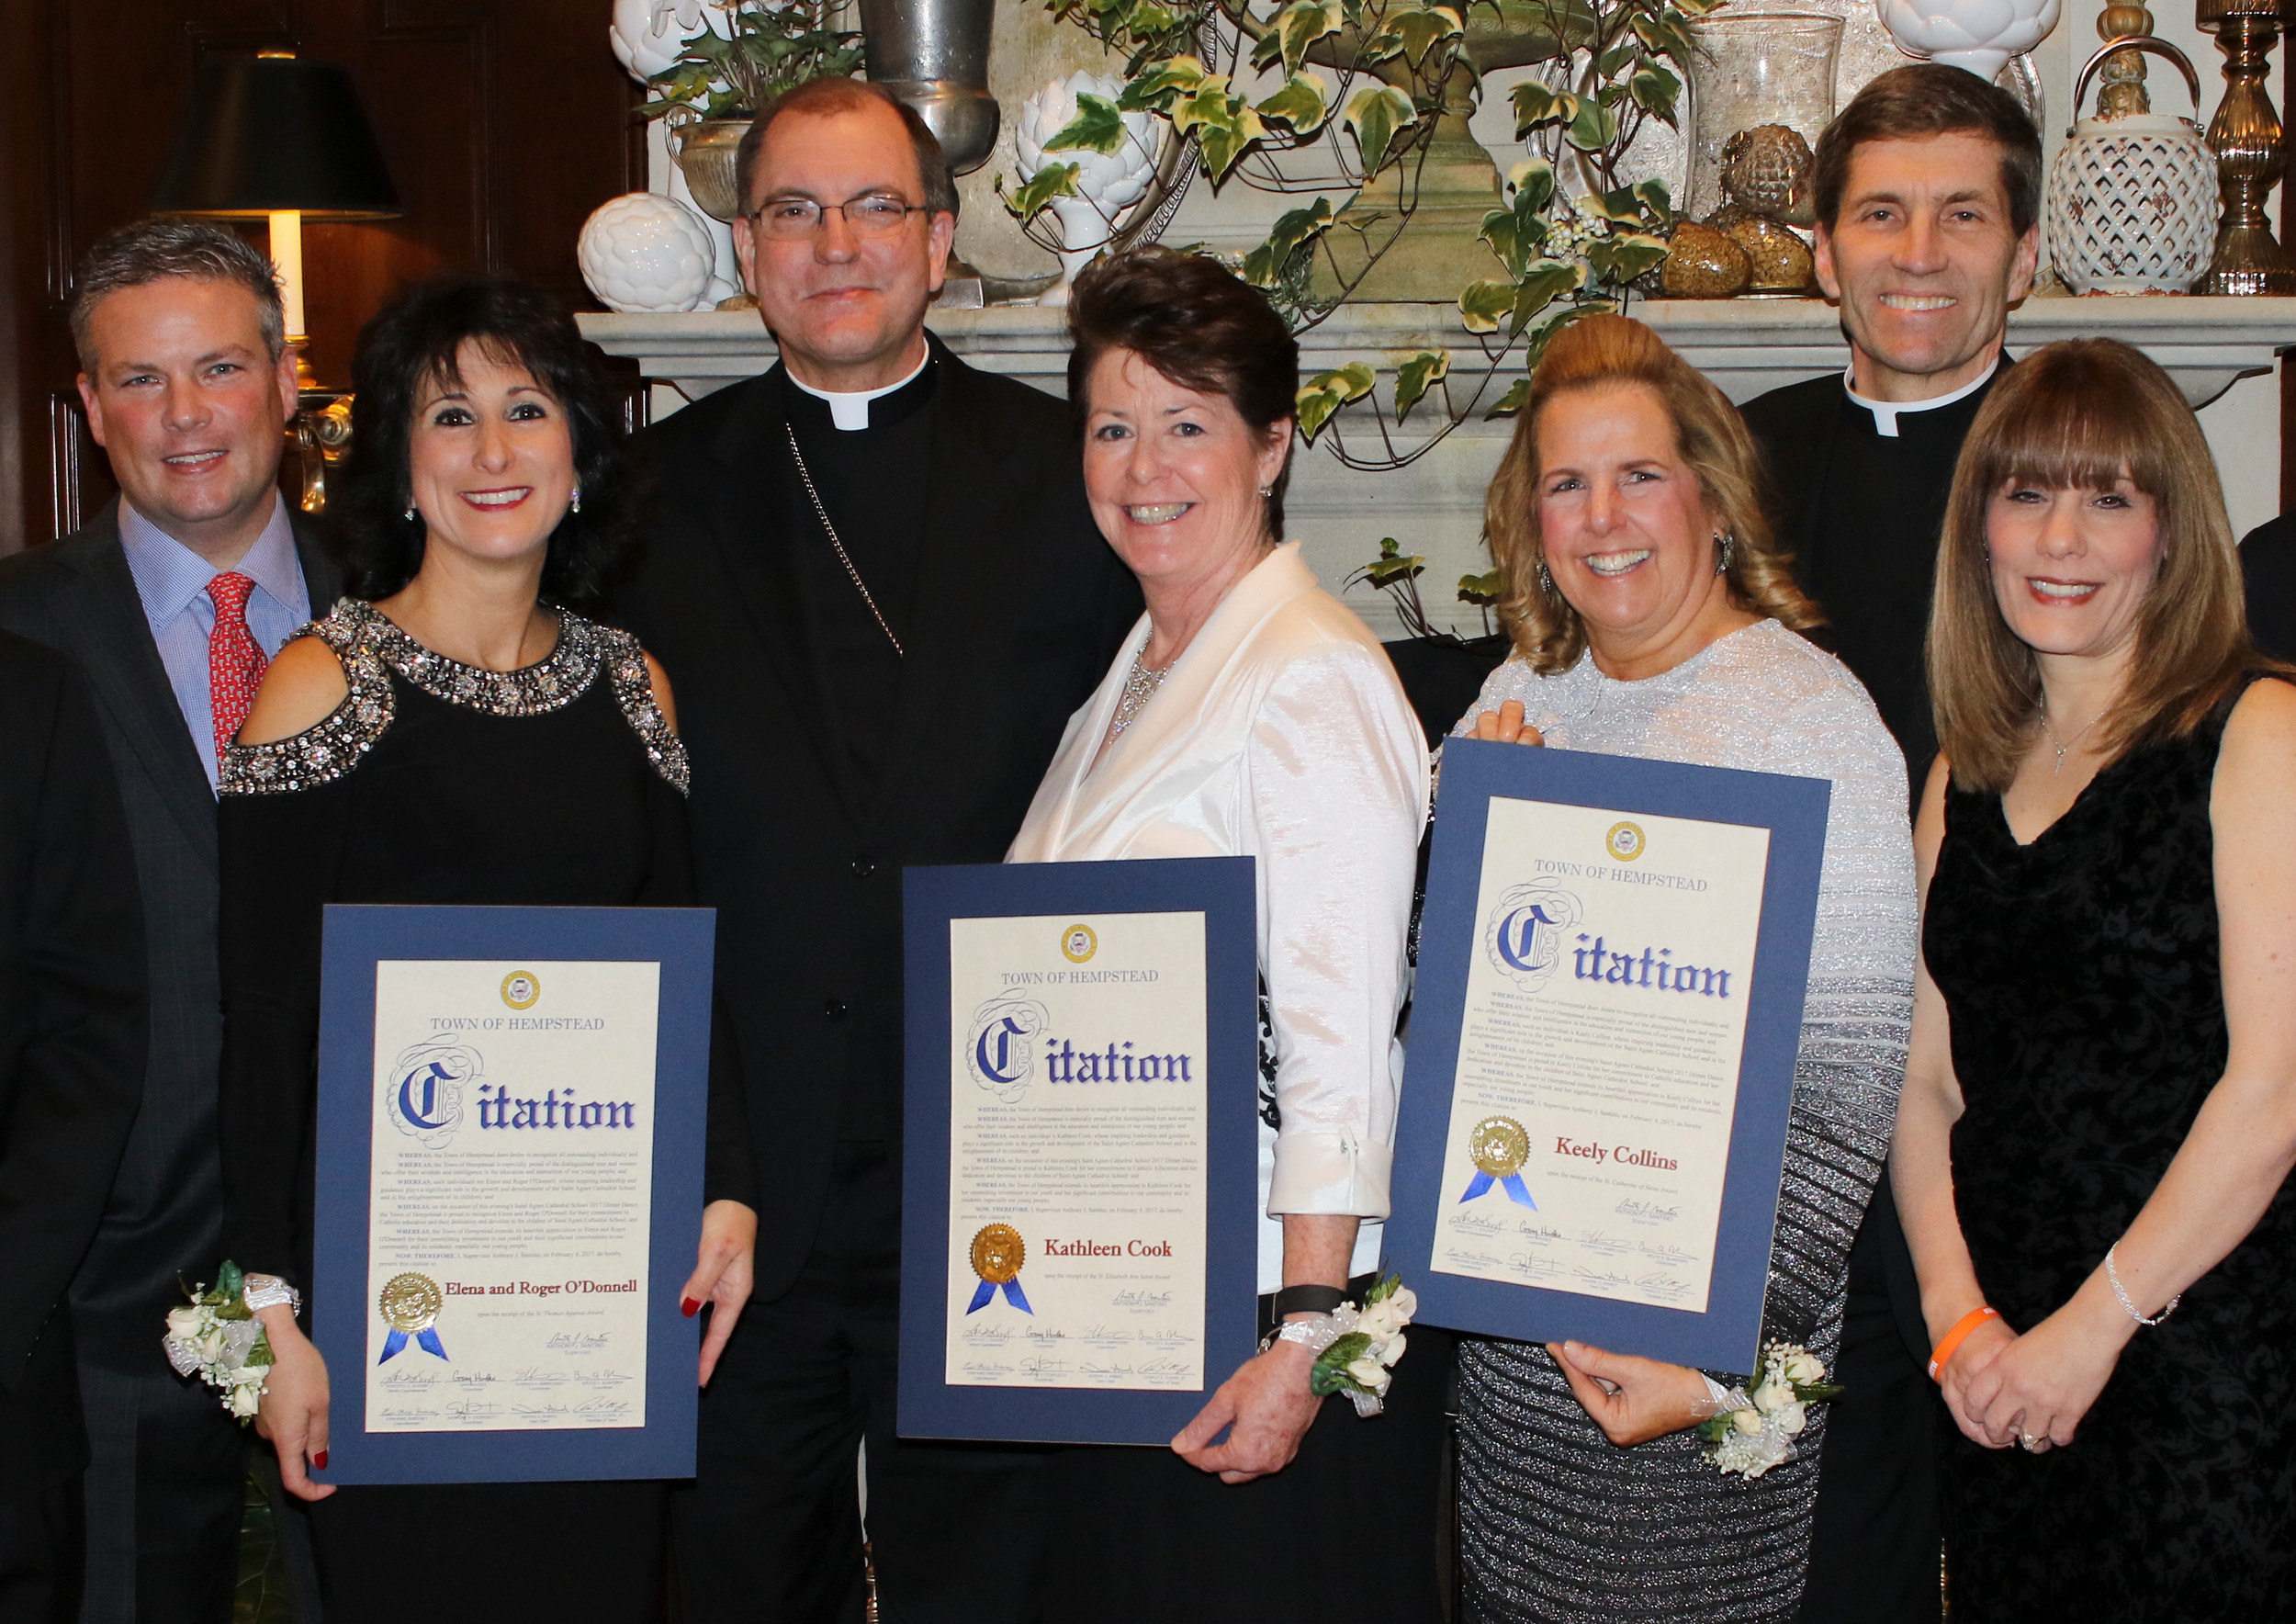 Roger and Elena O'Donnell, left, Kathleen Cook, center, and Keely Collins, third from right, were all honored at the St. Agnes Dinner Dance on Feb. 4. Bishop John Barres, third form left, Monsignor William Koenig, second from right, and St. Anges School principal Cecilia St. John, right, were also in attendance.